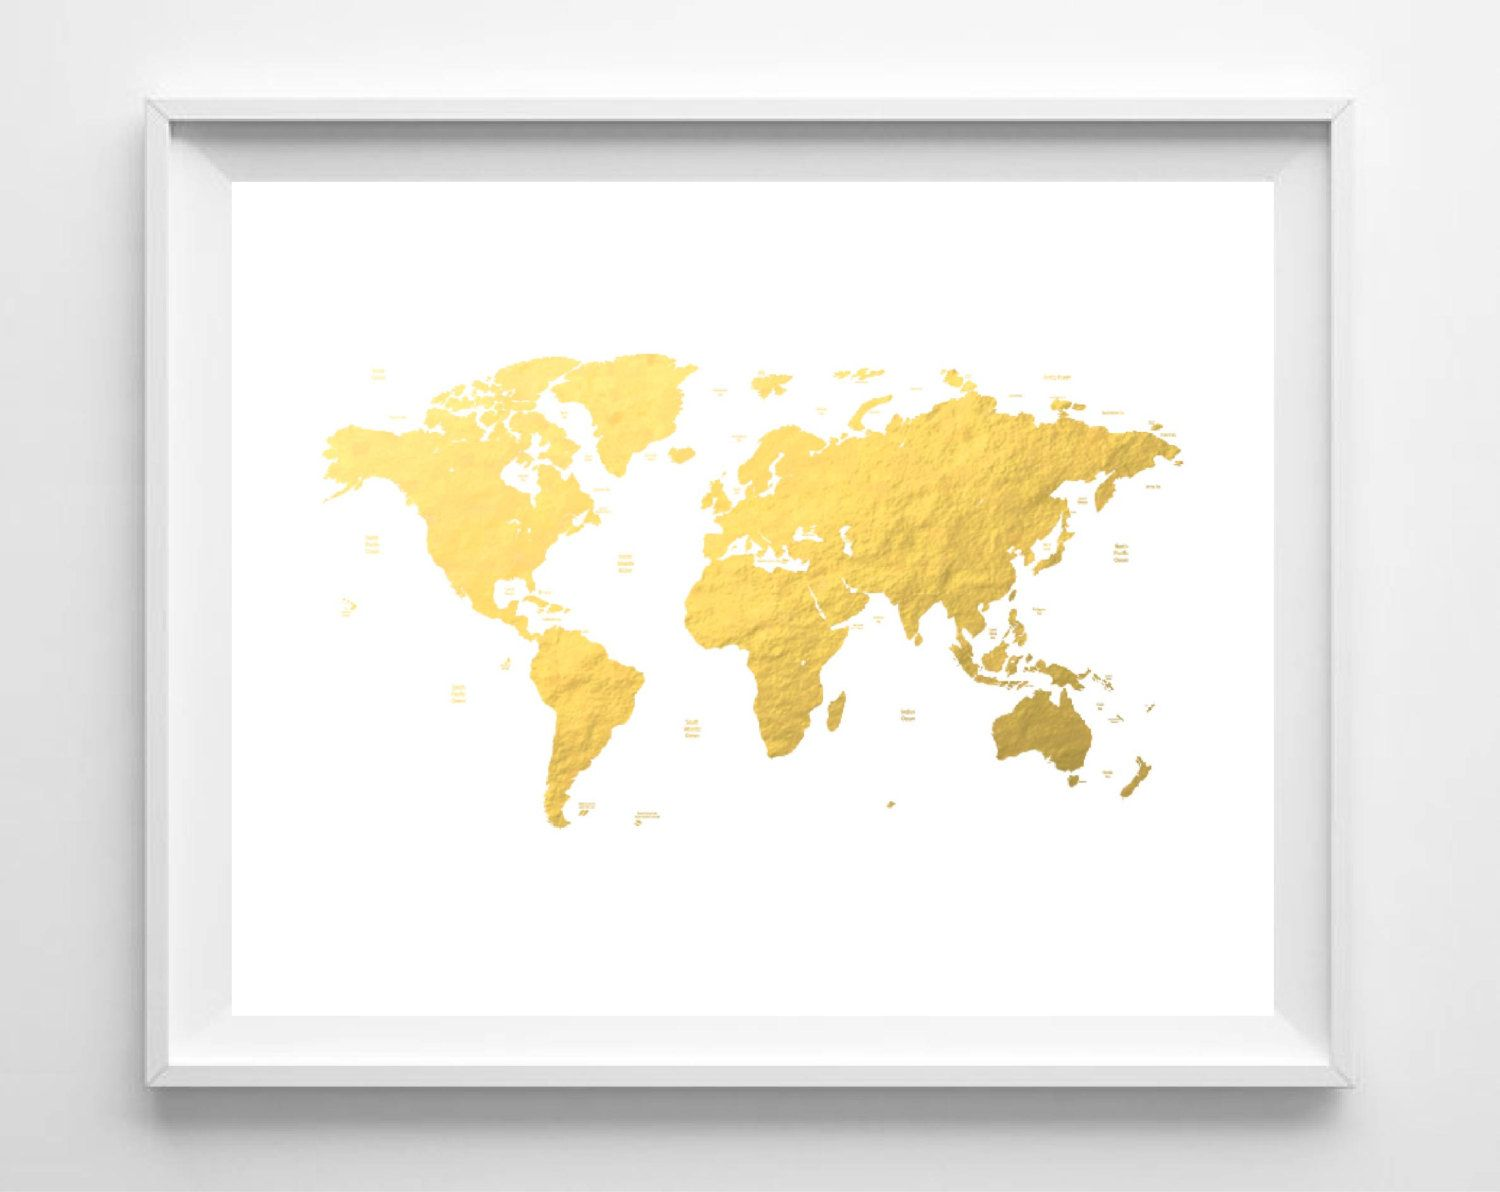 Printable world map faux gold foil gold foil print wall decor printable world map faux gold foil gold foil print wall decor home decor office sciox Gallery